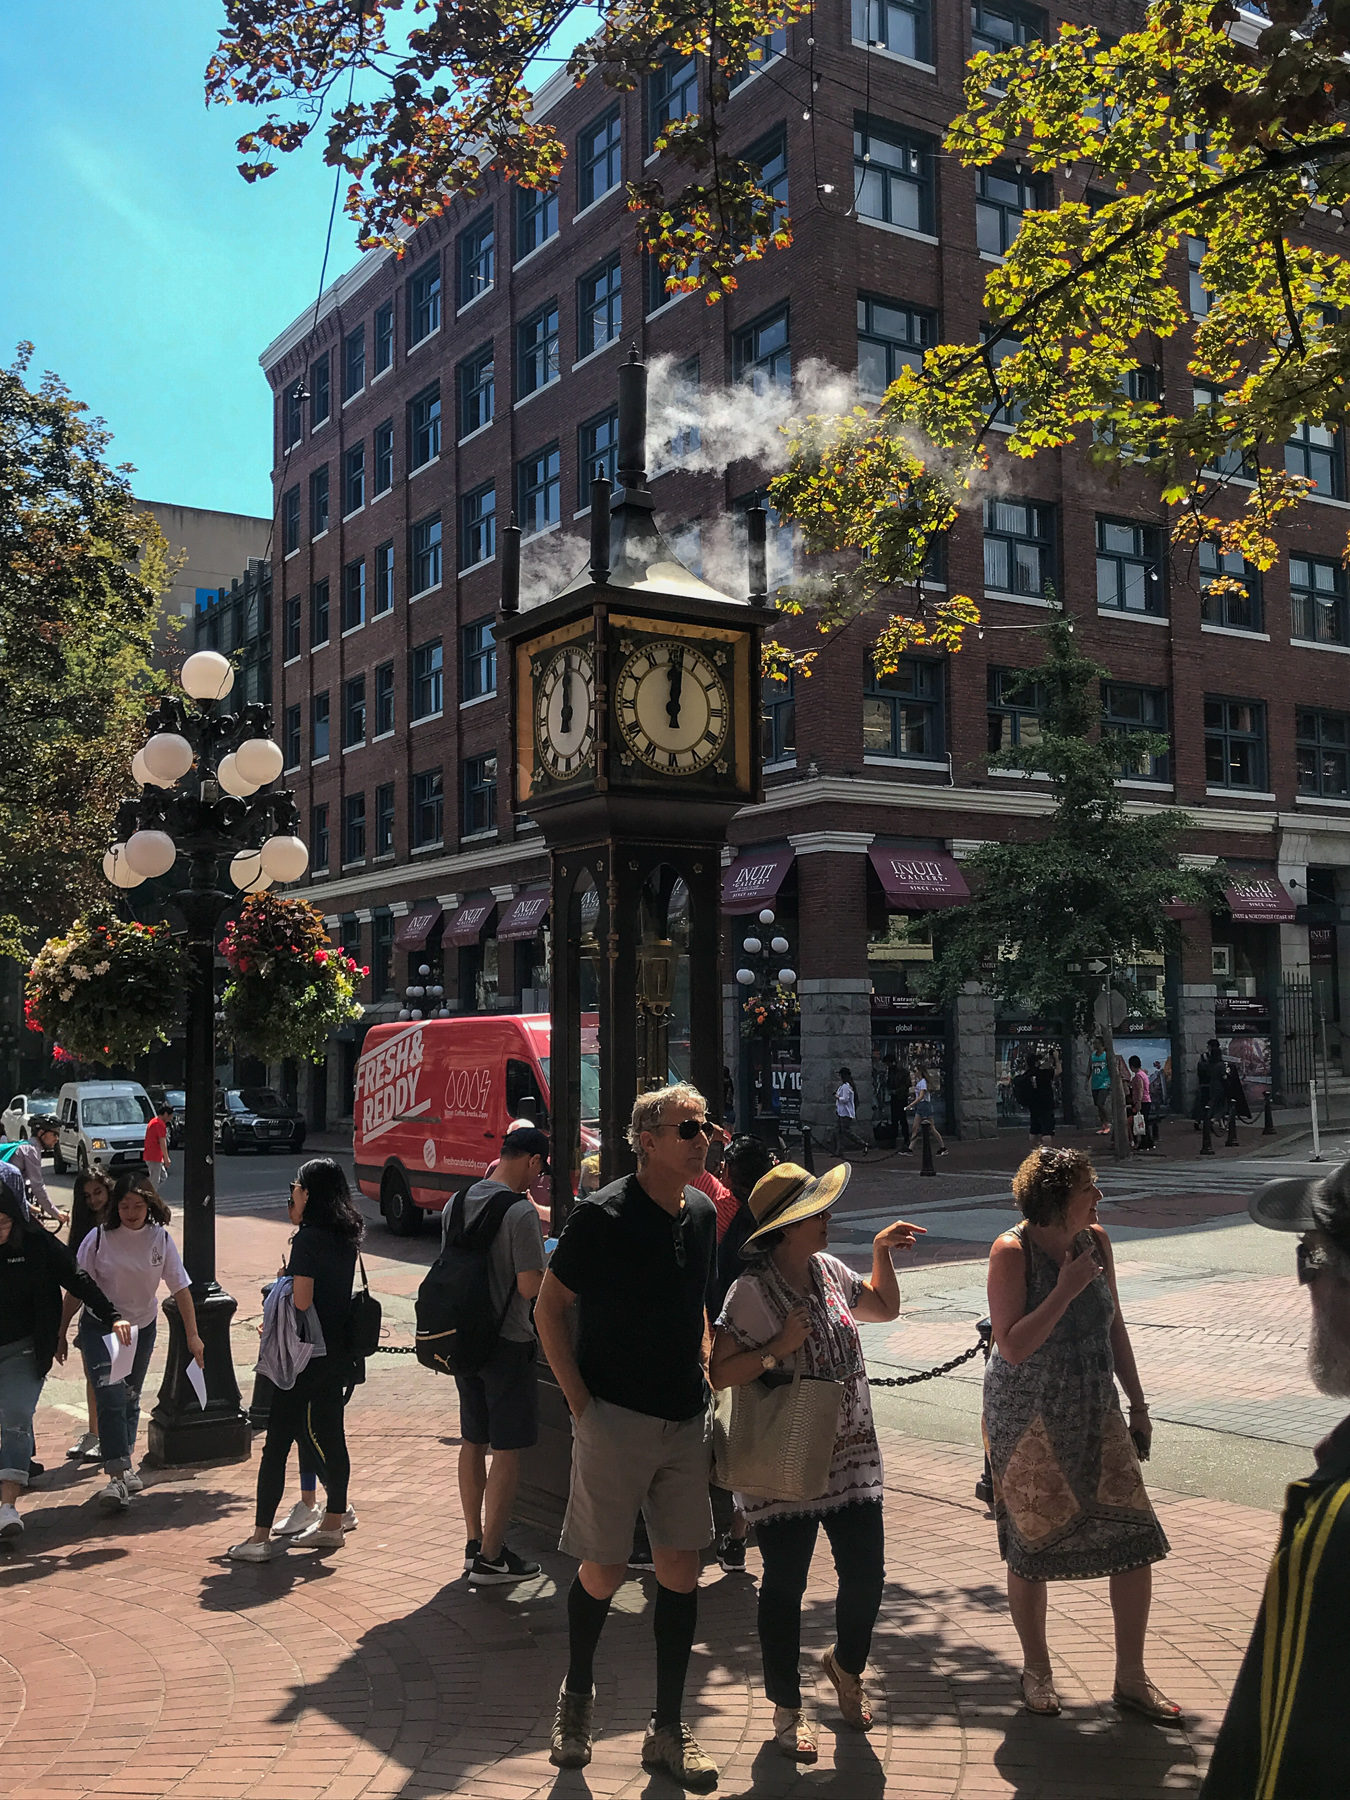 Every quarter of an hour, the steam-powered clock in Gastown makes noise. Especially on the hour a spectacle.